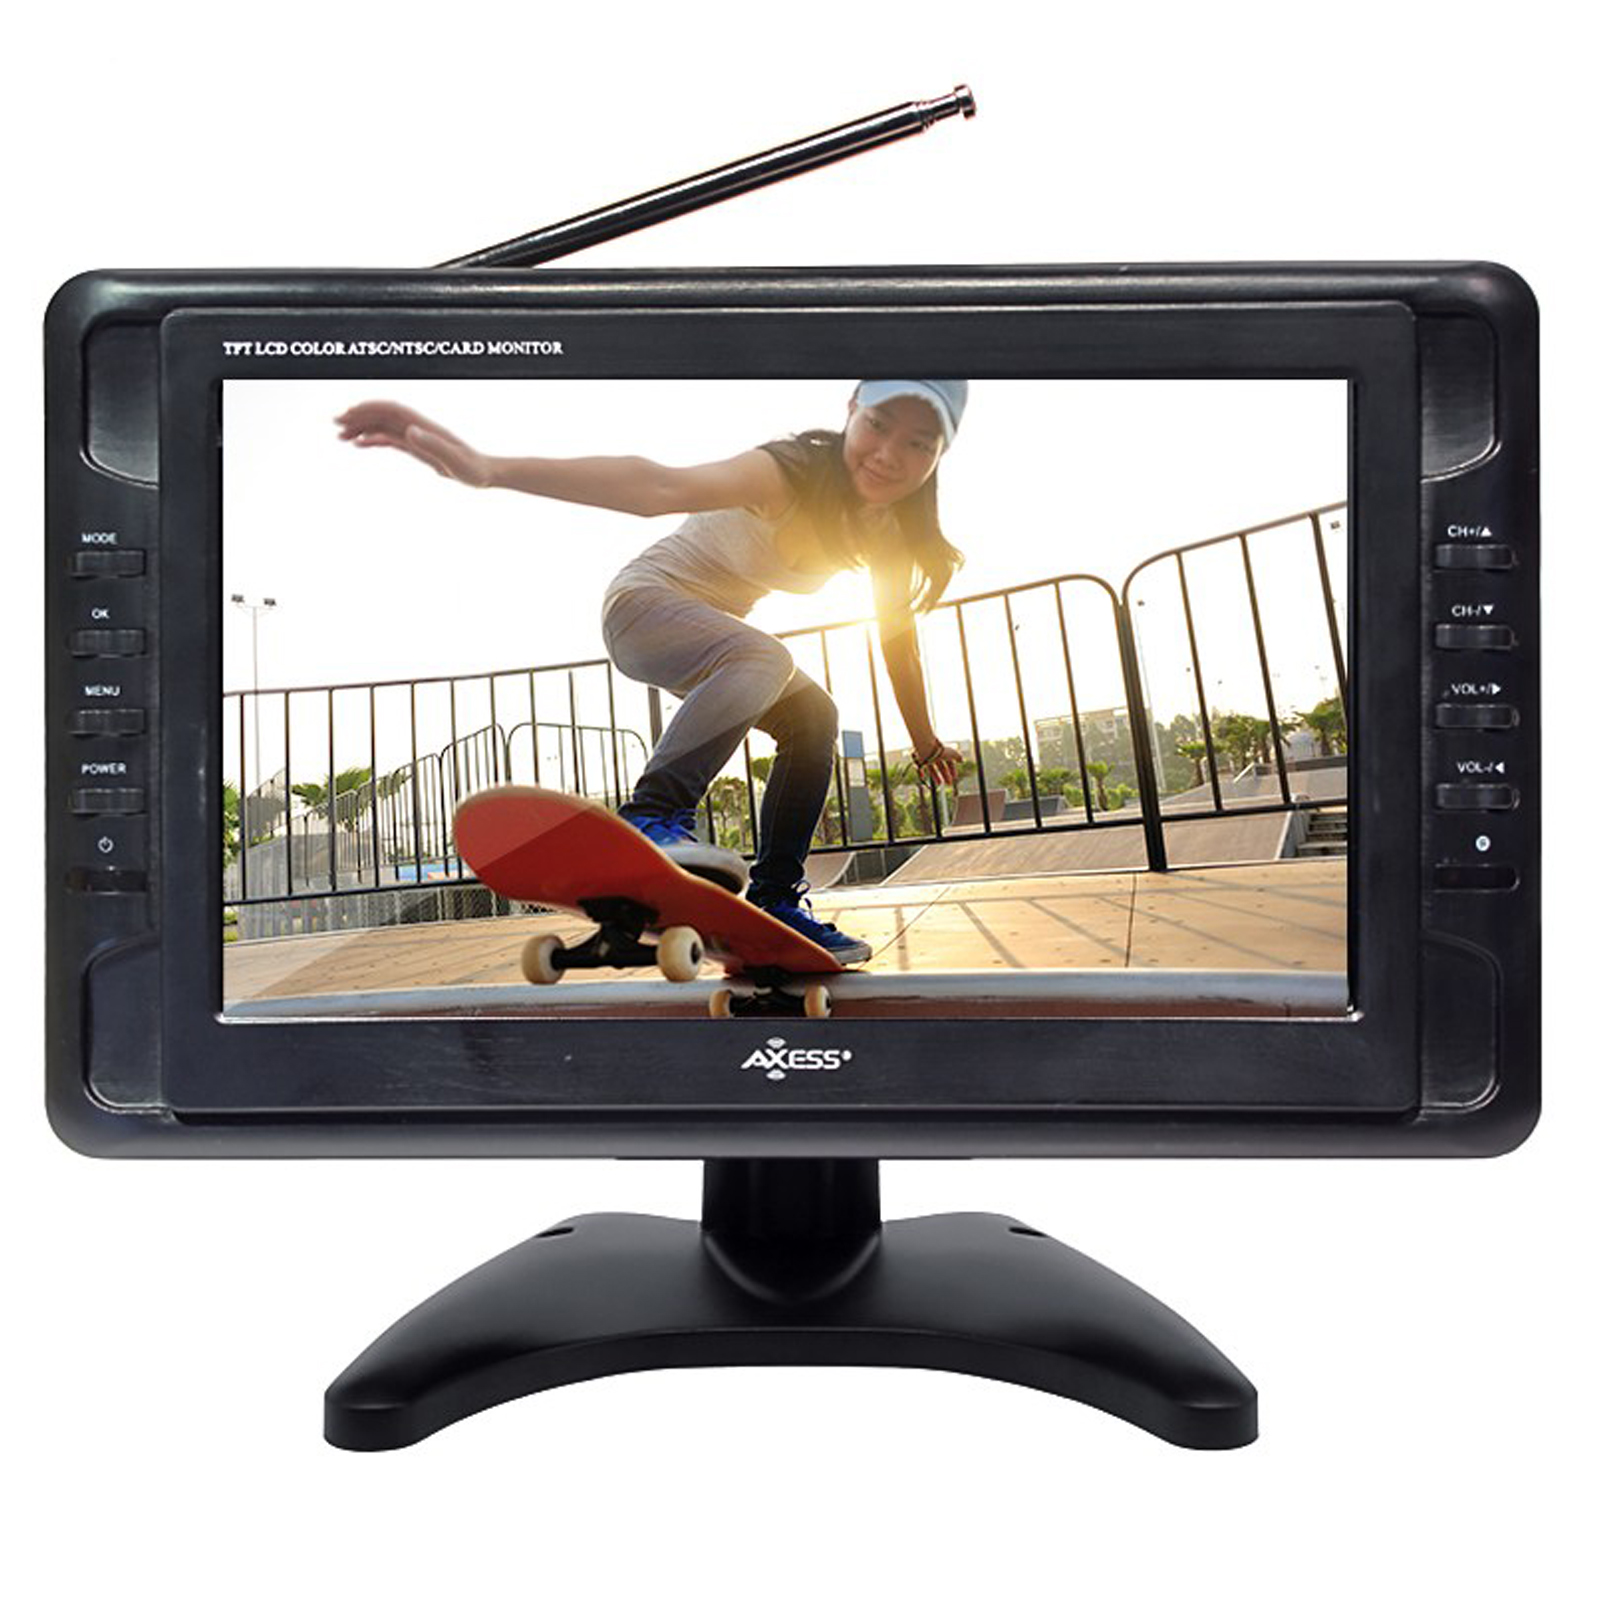 Axess 10 Inch Portable TV ATSC/NTSC with Battery